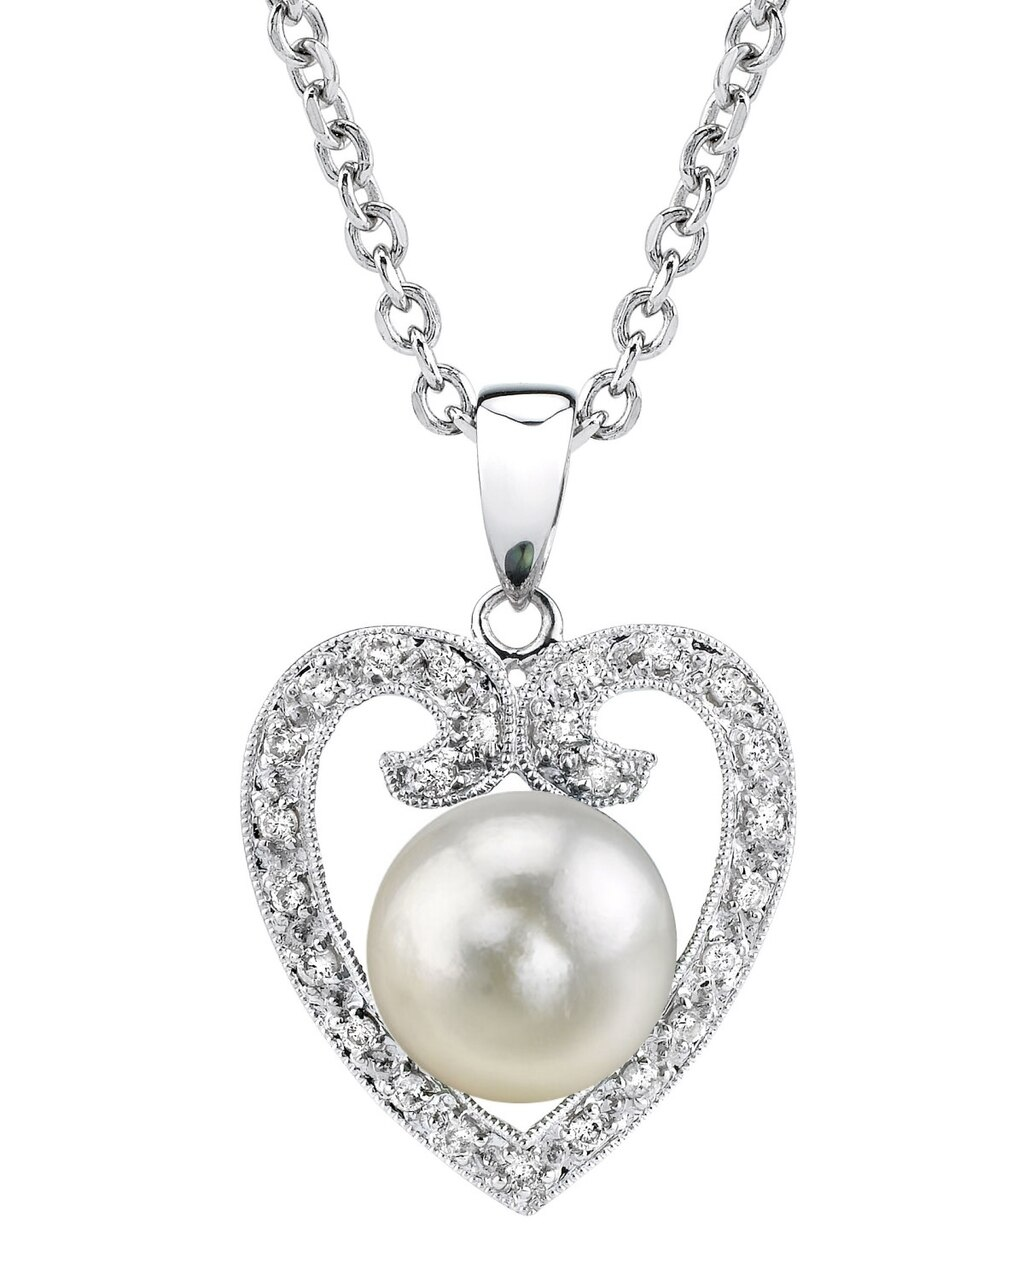 This classic pendant features an 9.0-9.5mm Japanese Akoya Pearl, handpicked for its luminous luster